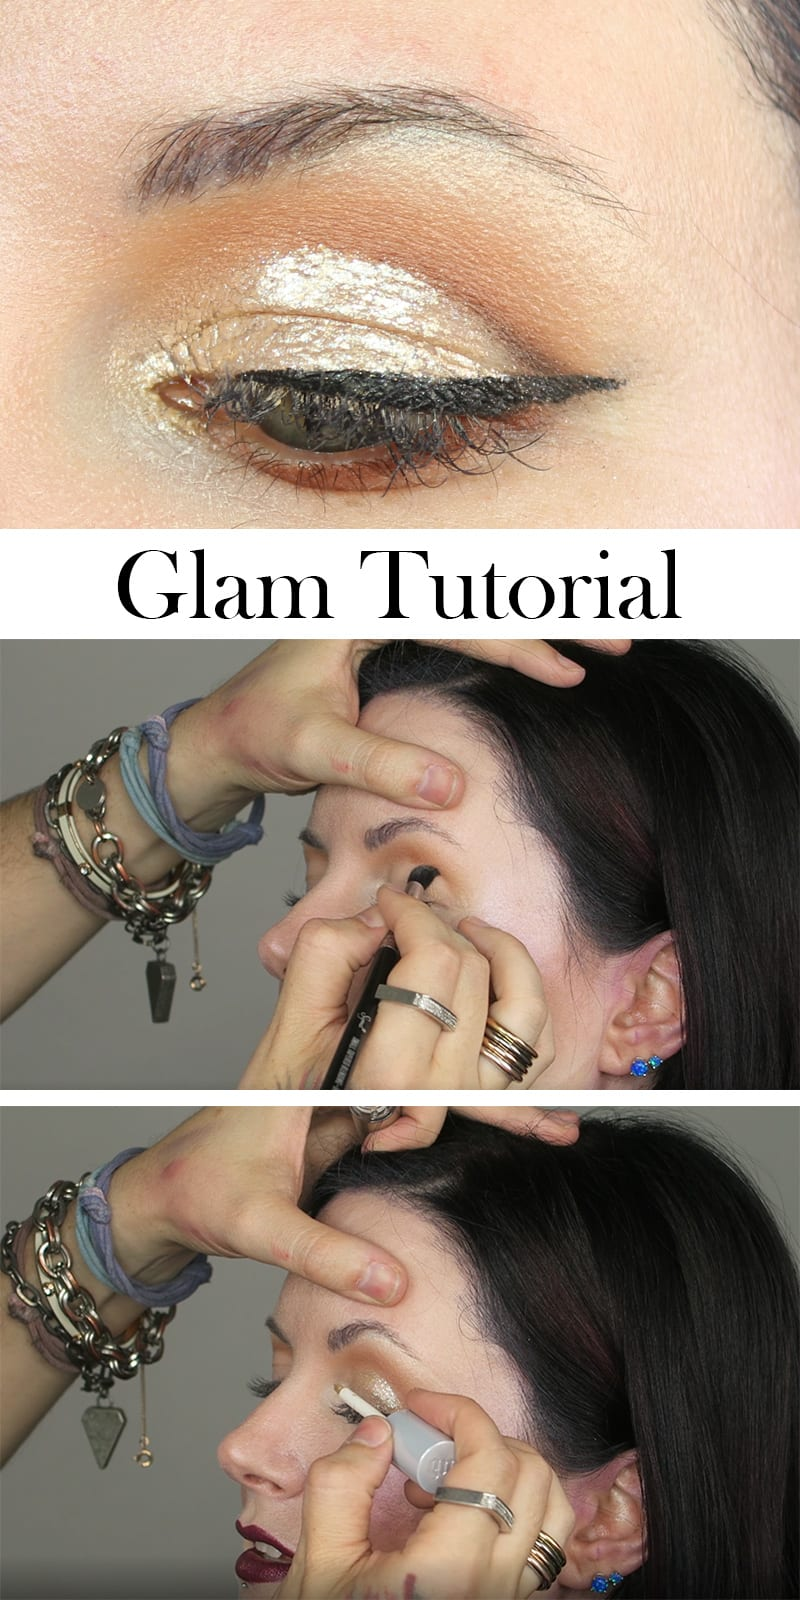 Glam Glitter Cut Crease Winged Liner Tutorial for Hooded Eyes with Mickey the talented former Urban Decay Makeup Artist.